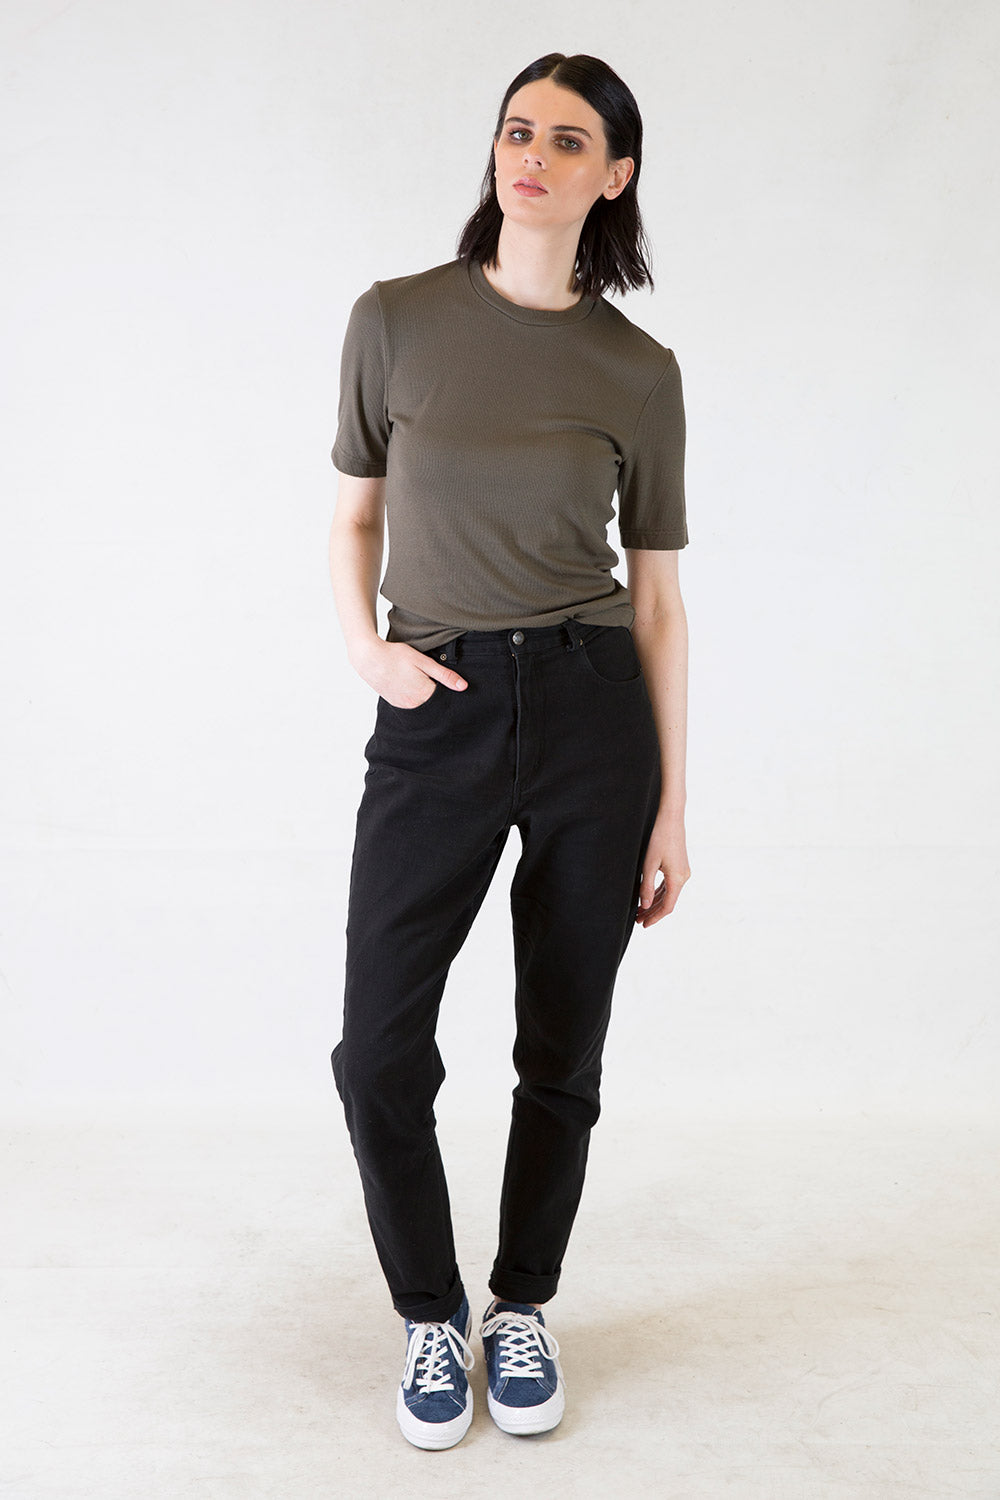 Jake Rib Tee | Young + Resolute | Annah Stretton